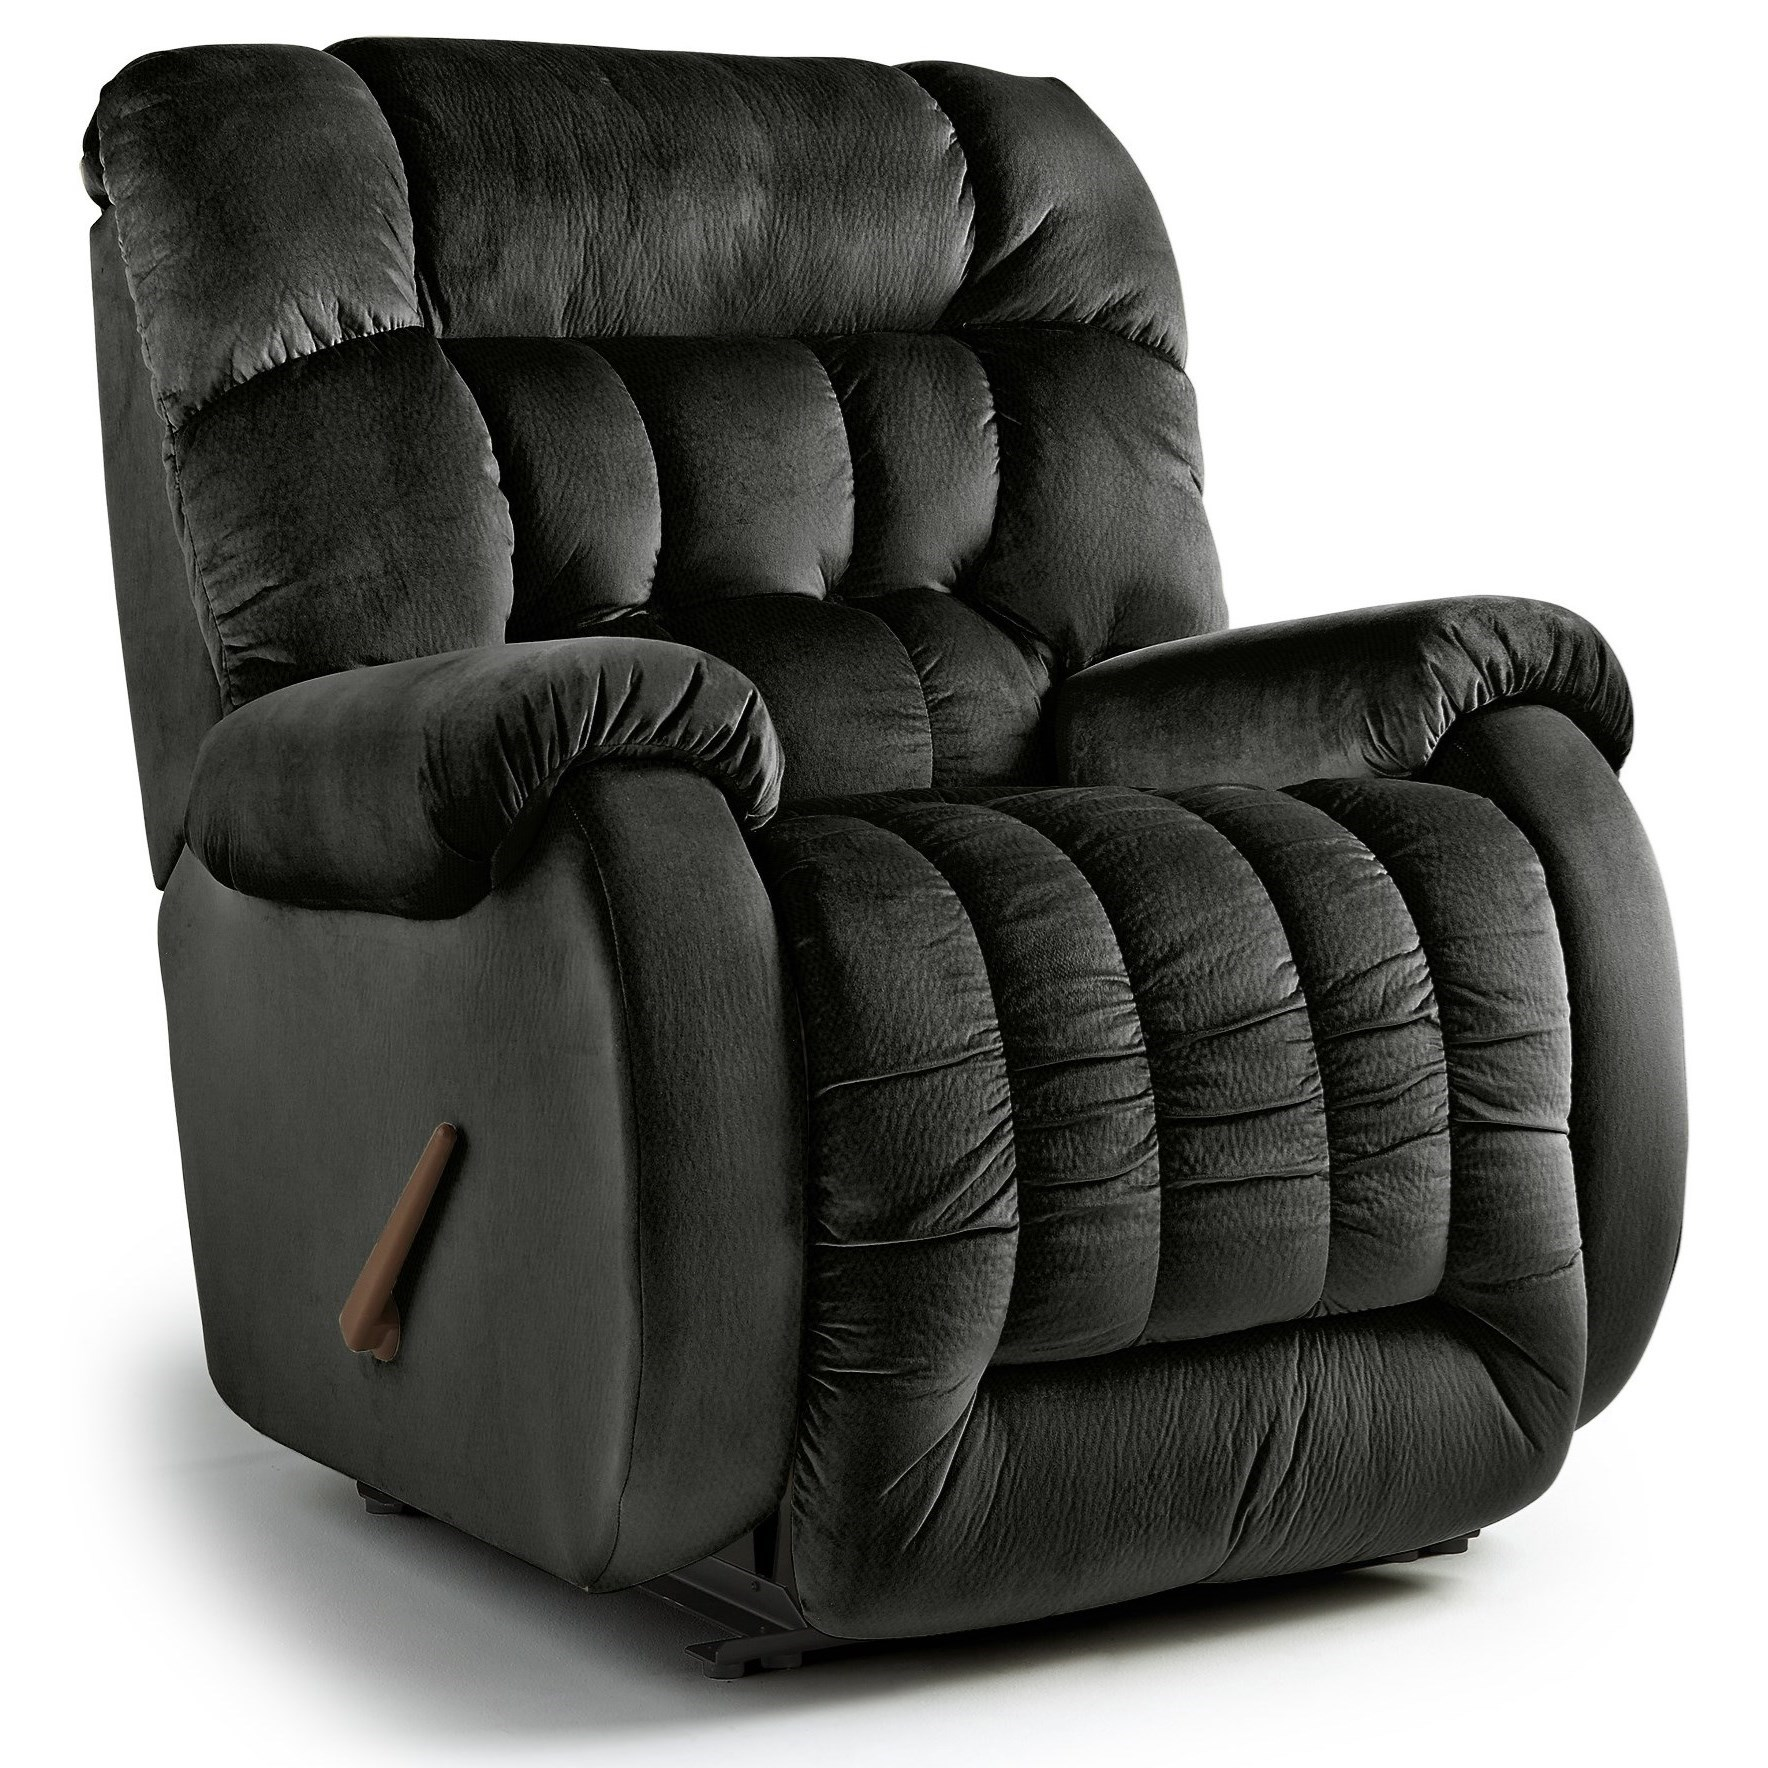 Best Home Furnishings Recliners - The Beast Rake Beast Recliner - Item Number -1727245879  sc 1 st  Wayside Furniture & Best Home Furnishings Recliners - The Beast Rake Beast Recliner ... islam-shia.org